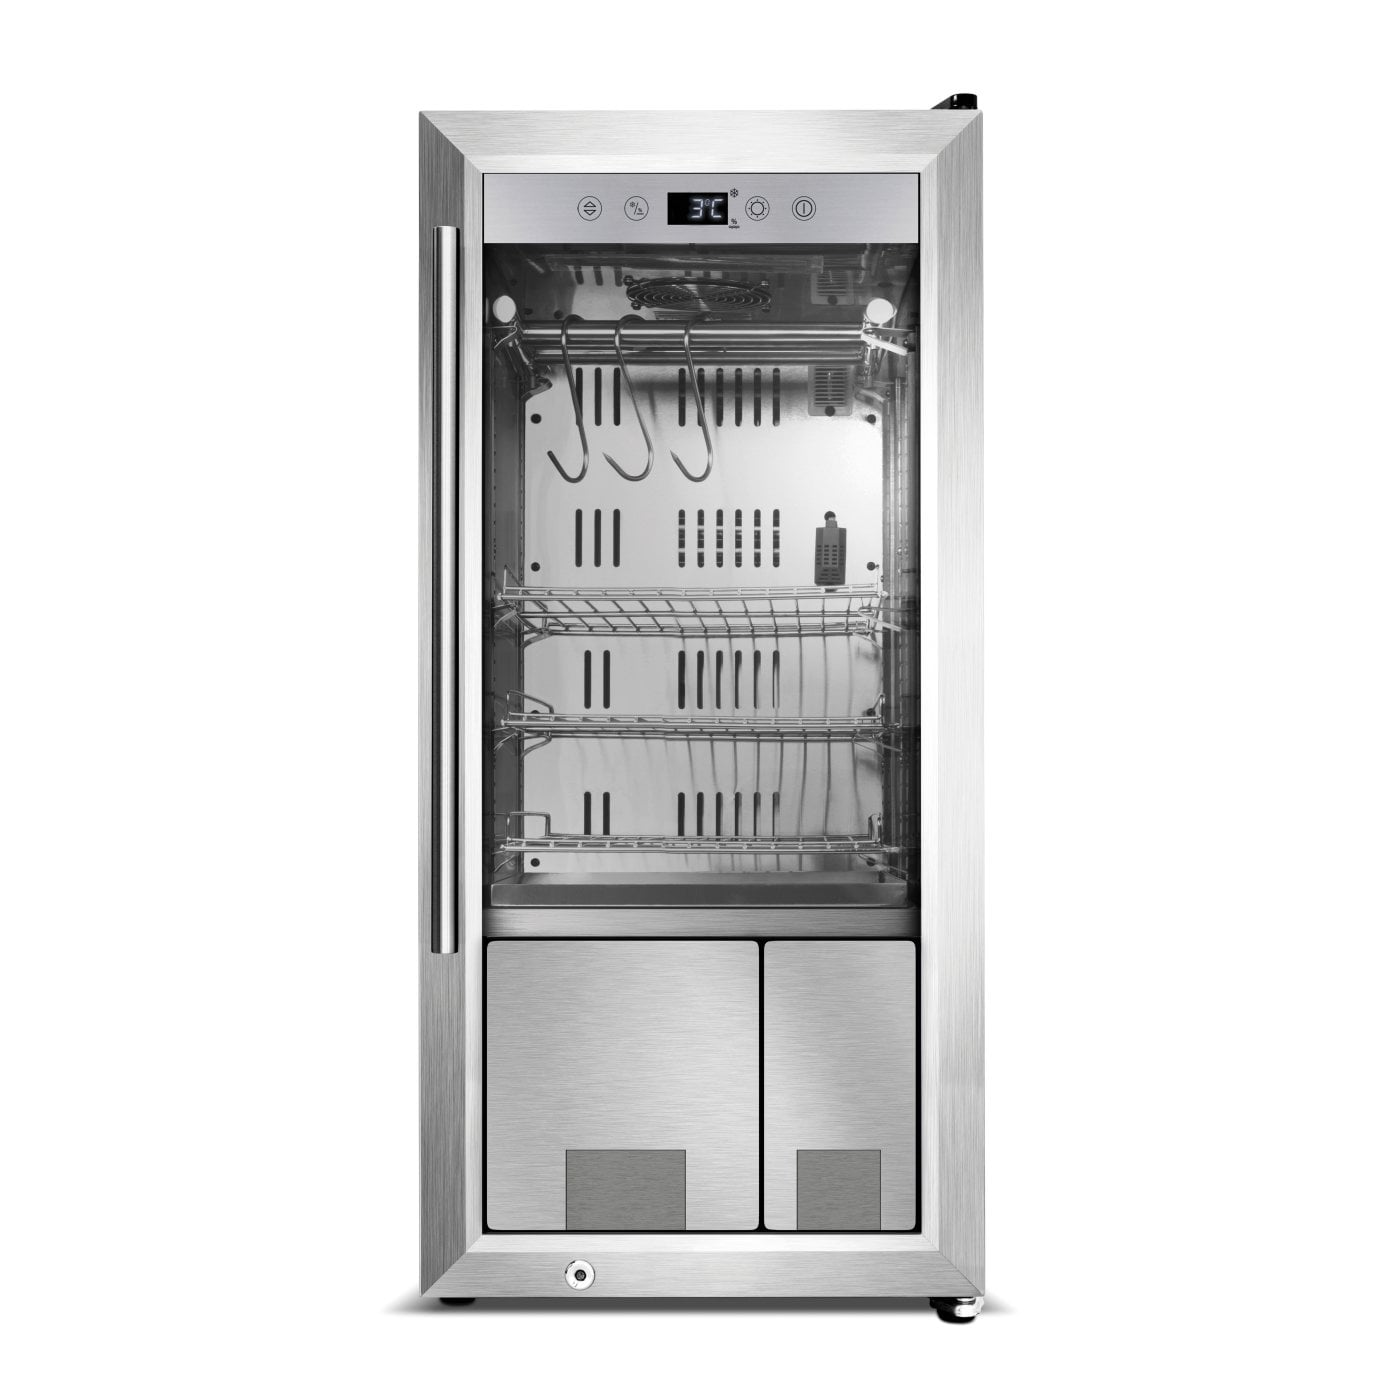 Food Ageing Cabinet With Compressor Technology Dry Aged